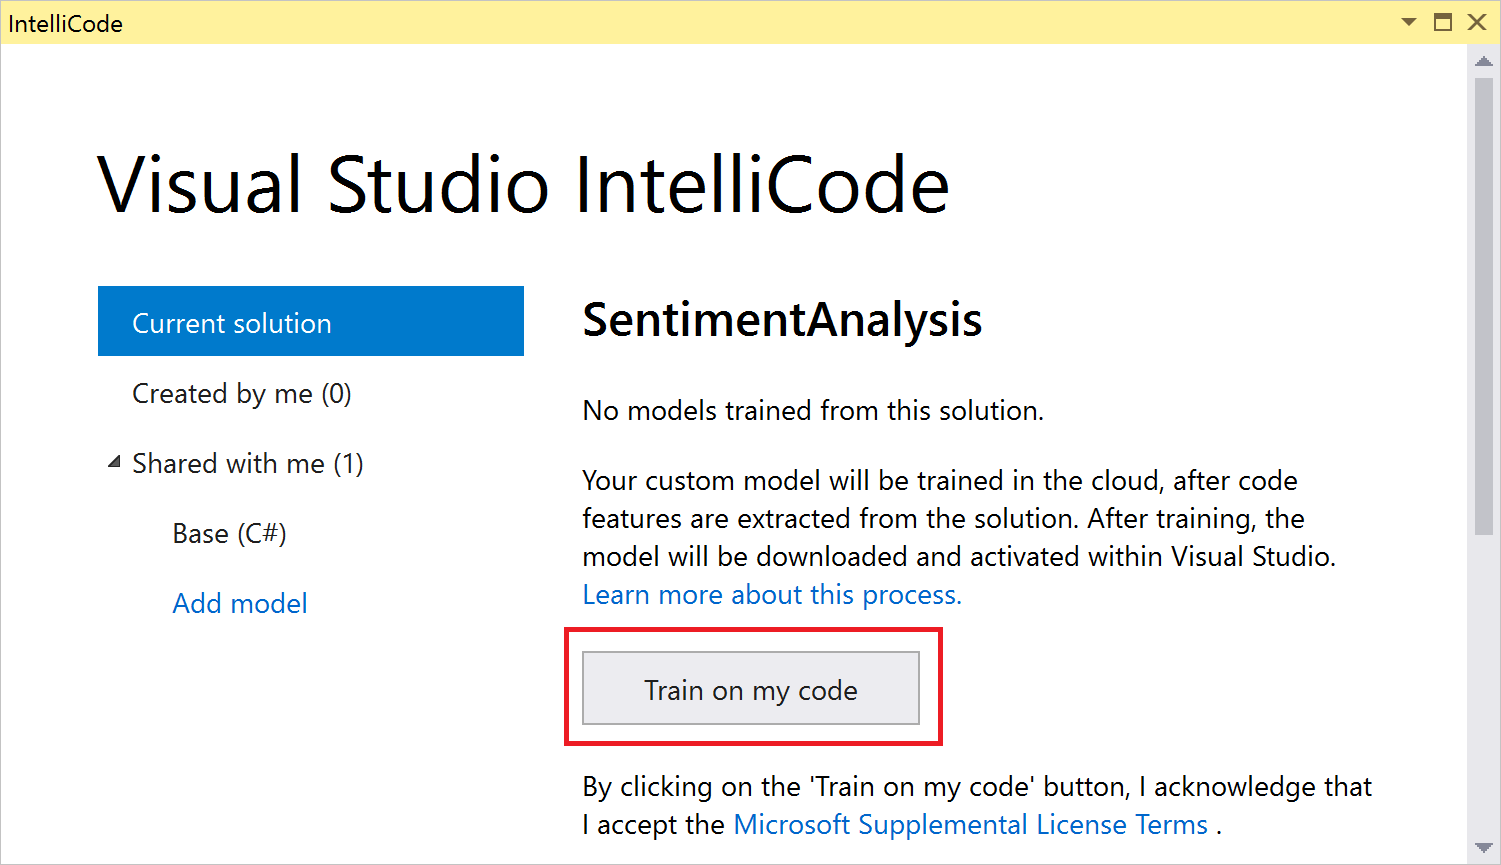 Training a custom IntellICode model on my code